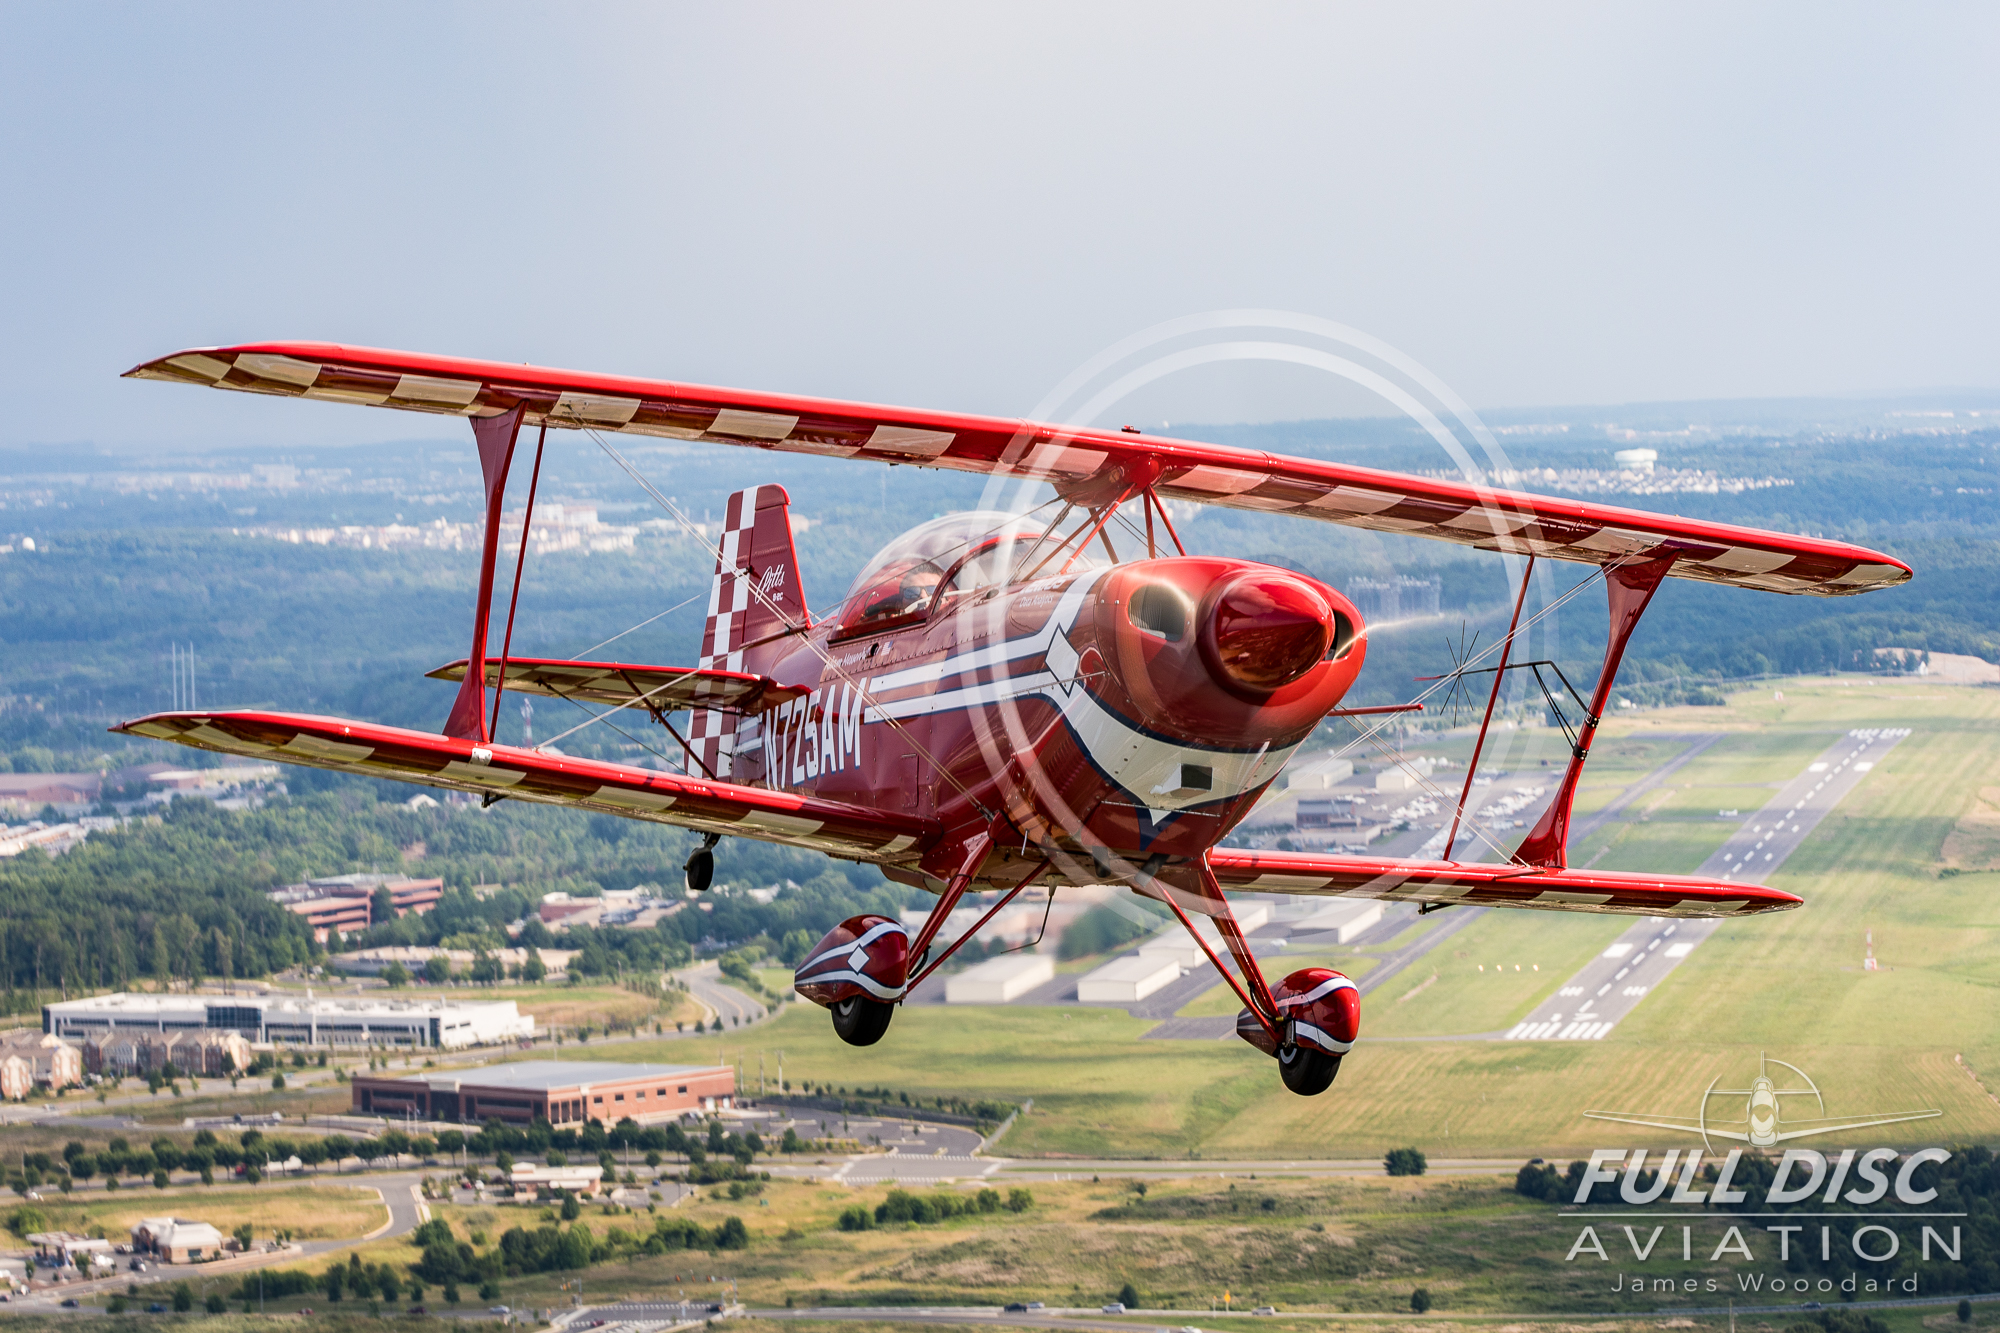 FullDiscAviation_JamesWoodard-July 03, 2018-29.jpg